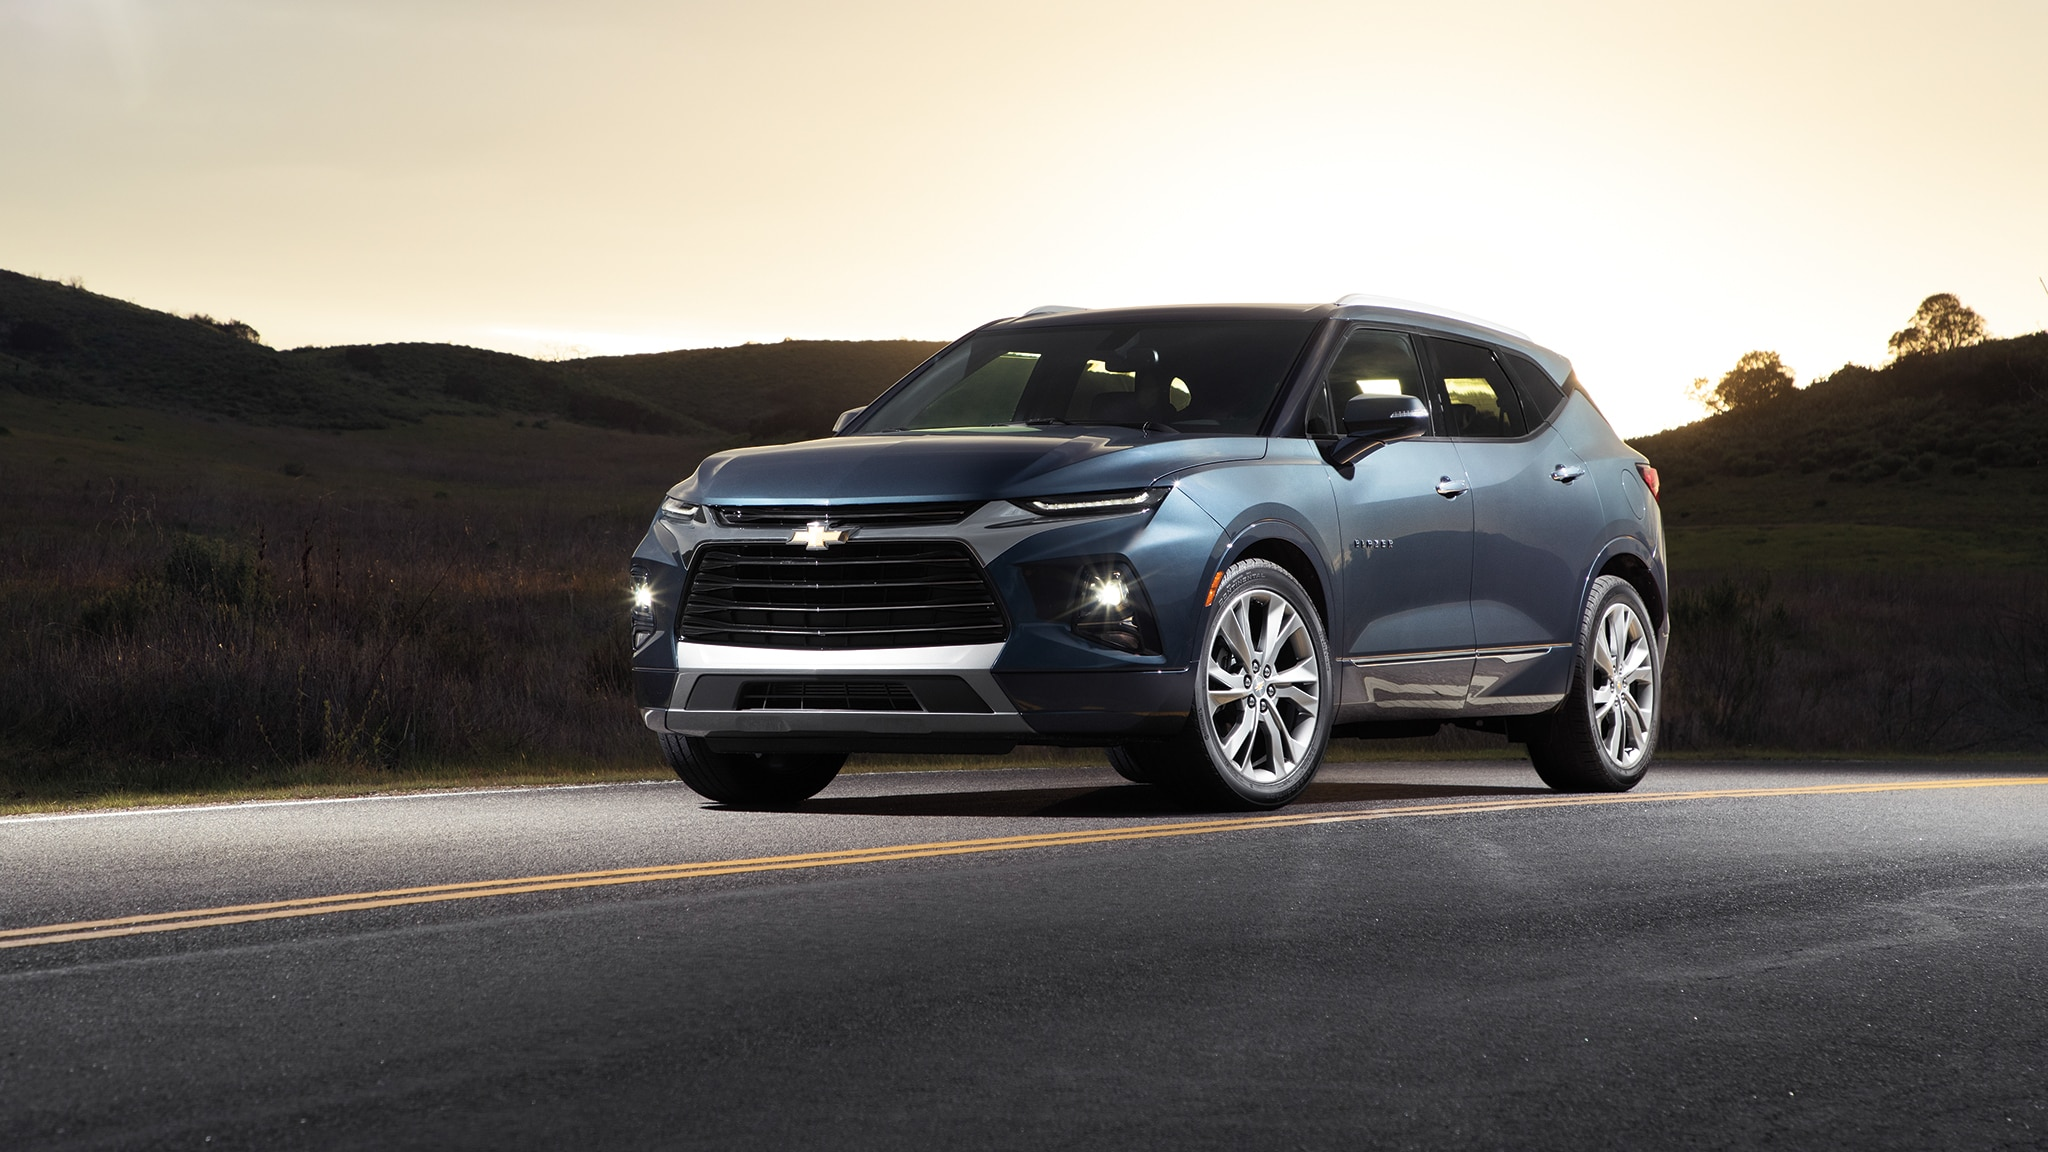 2019 Chevrolet Blazer First Drive Review: The Optimist's ...